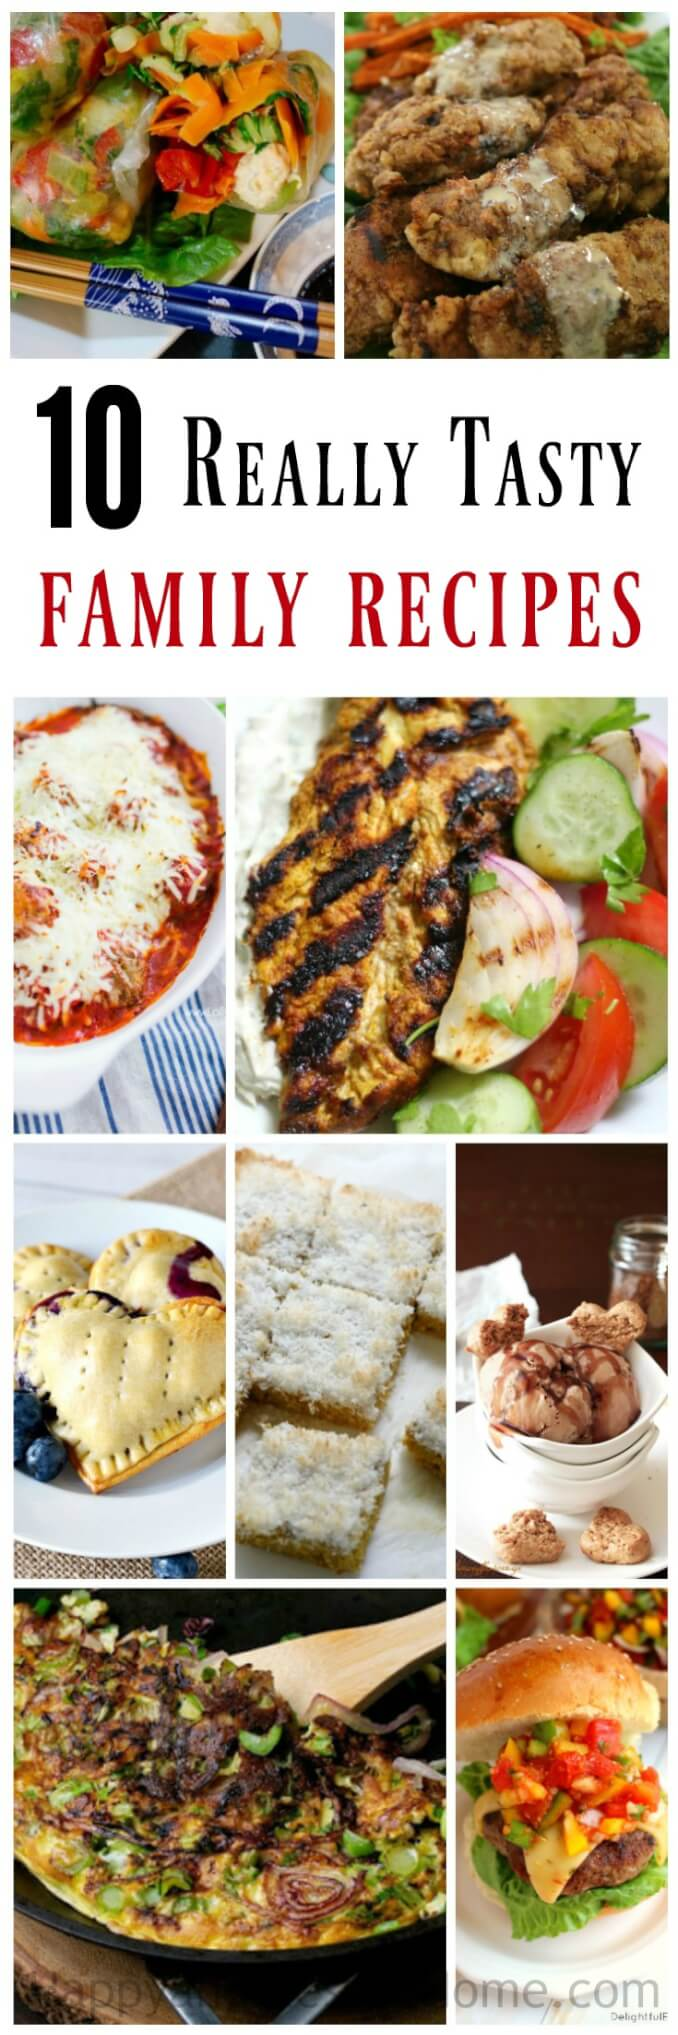 10 Really Tasty Family Recipes including chicken, meat balls, burgers, chicken fingers and more